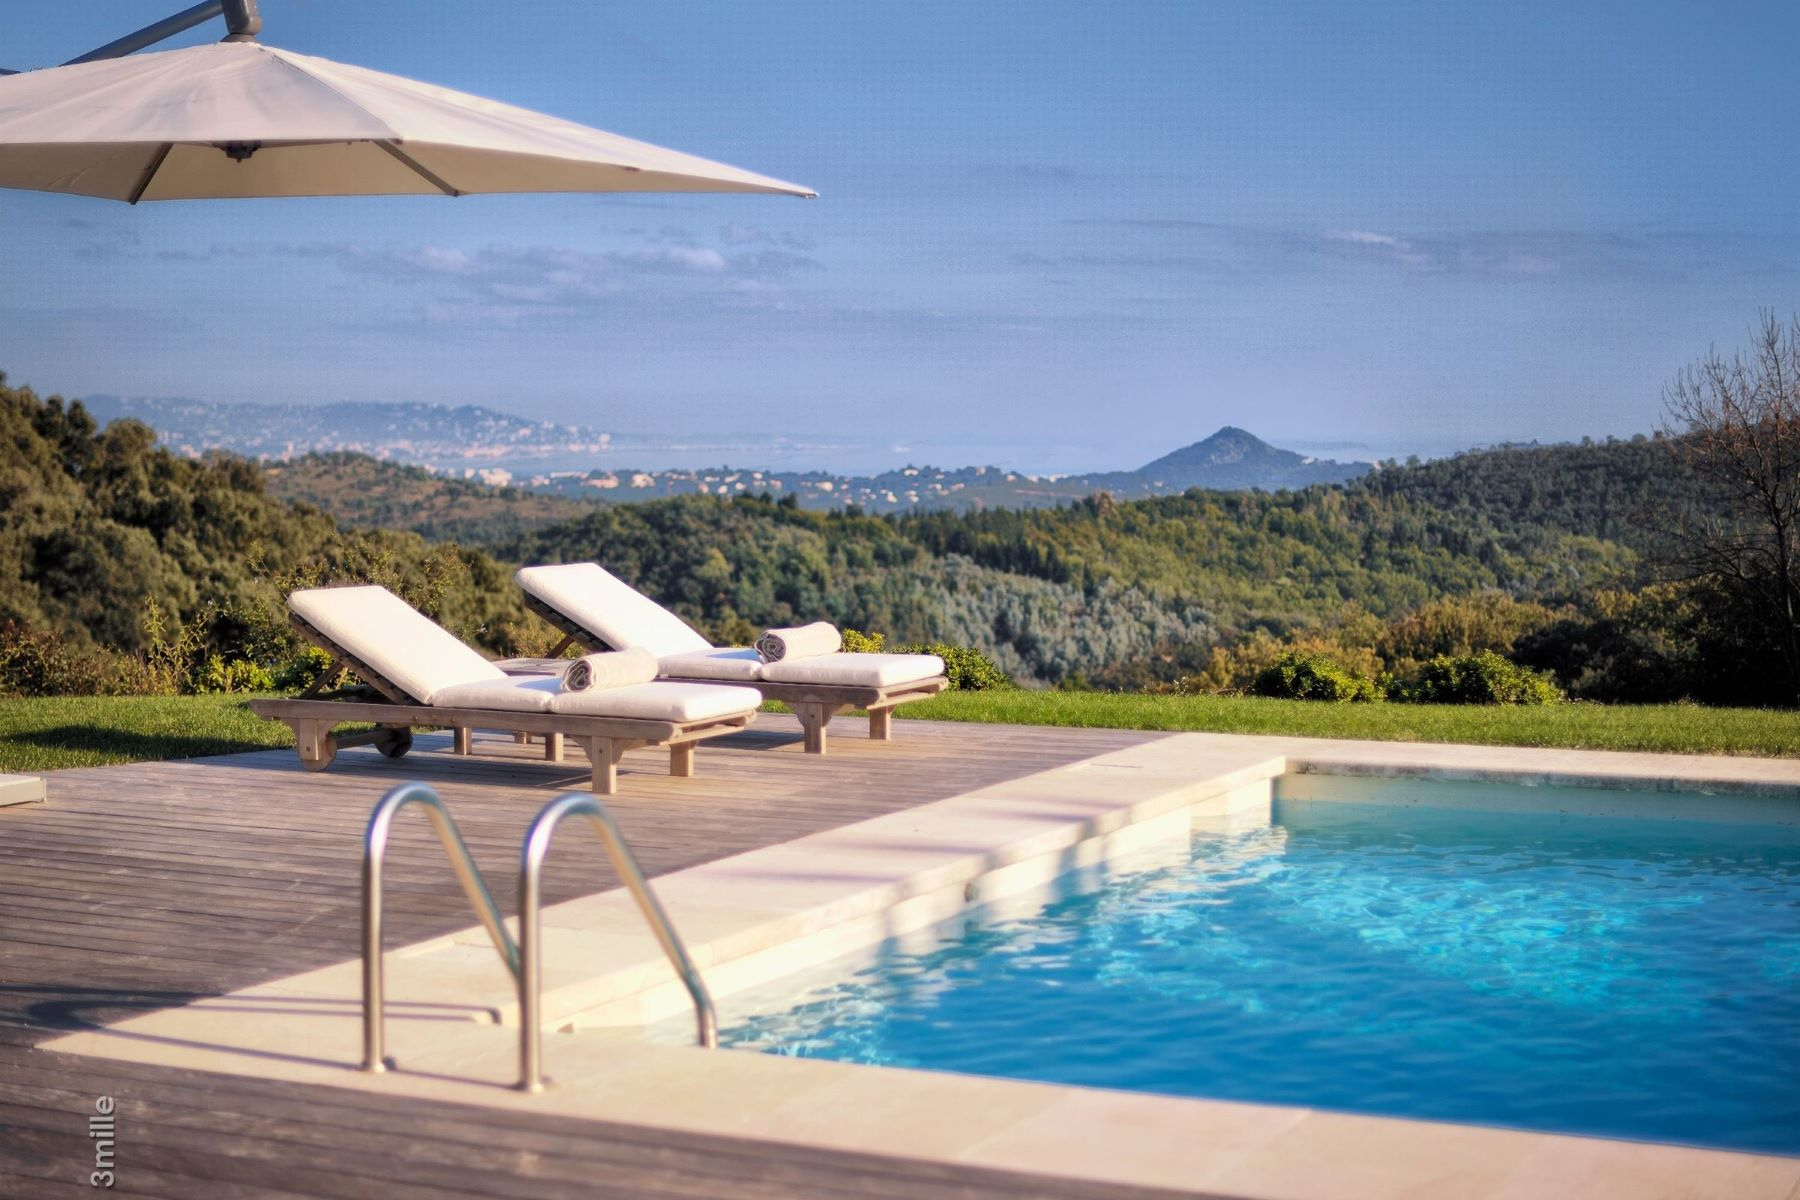 Additional photo for property listing at Magnificent provencal domain with views over the bay of Cannes - luxury estate  Les Adrets De L Esterel, Provence-Alpes-Cote D'Azur 83600 France